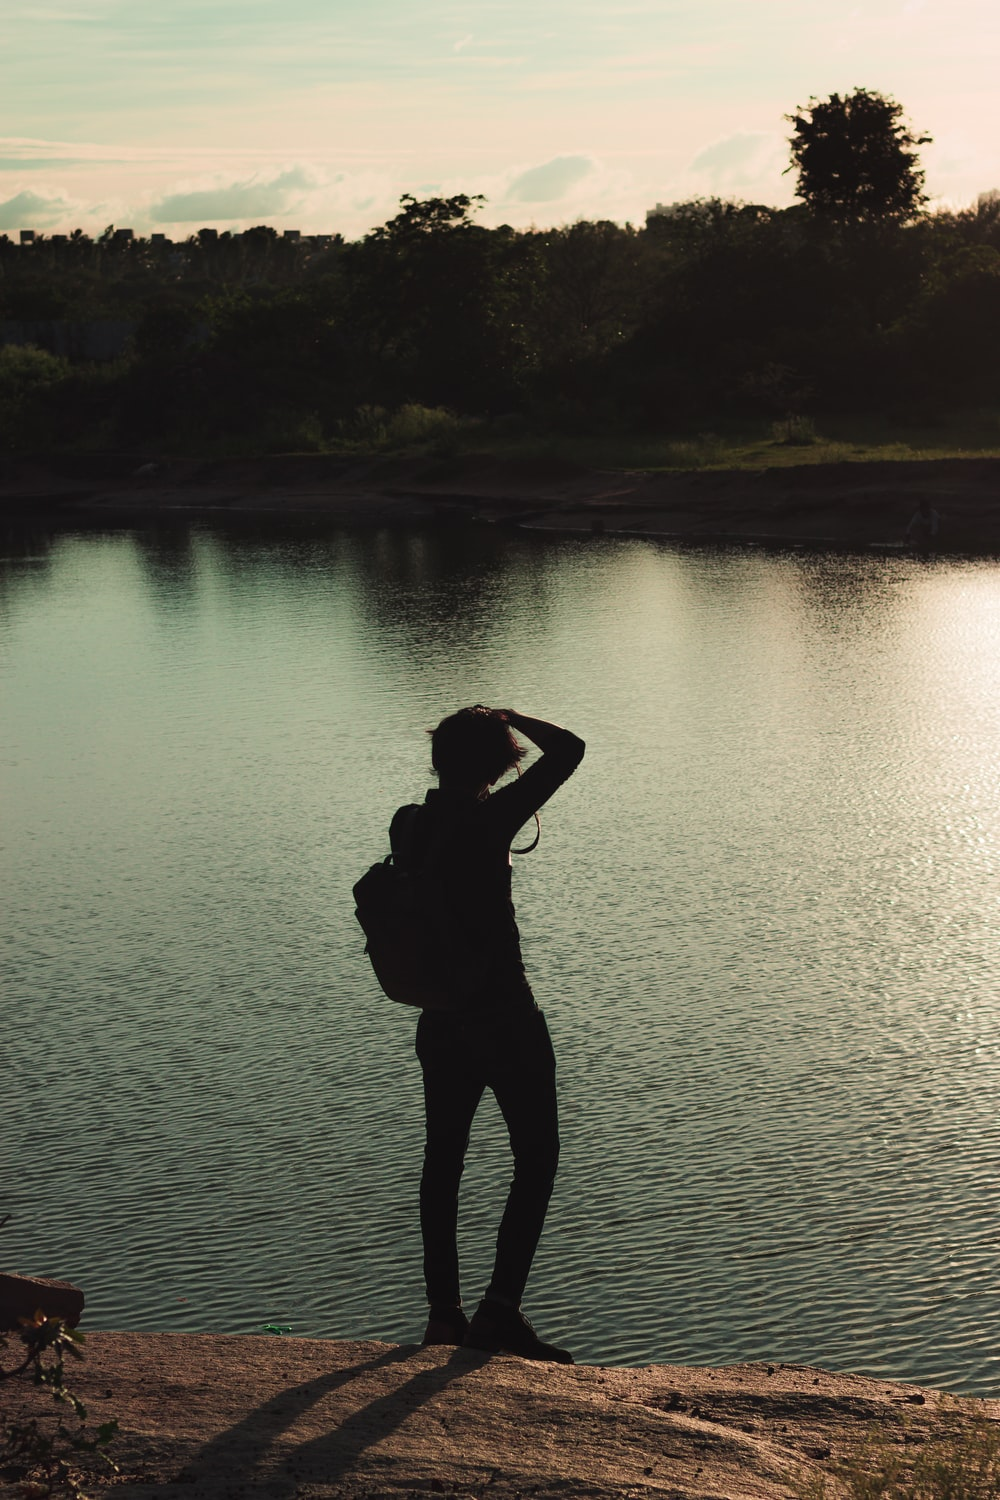 silhouette of woman standing on lake shore during daytime